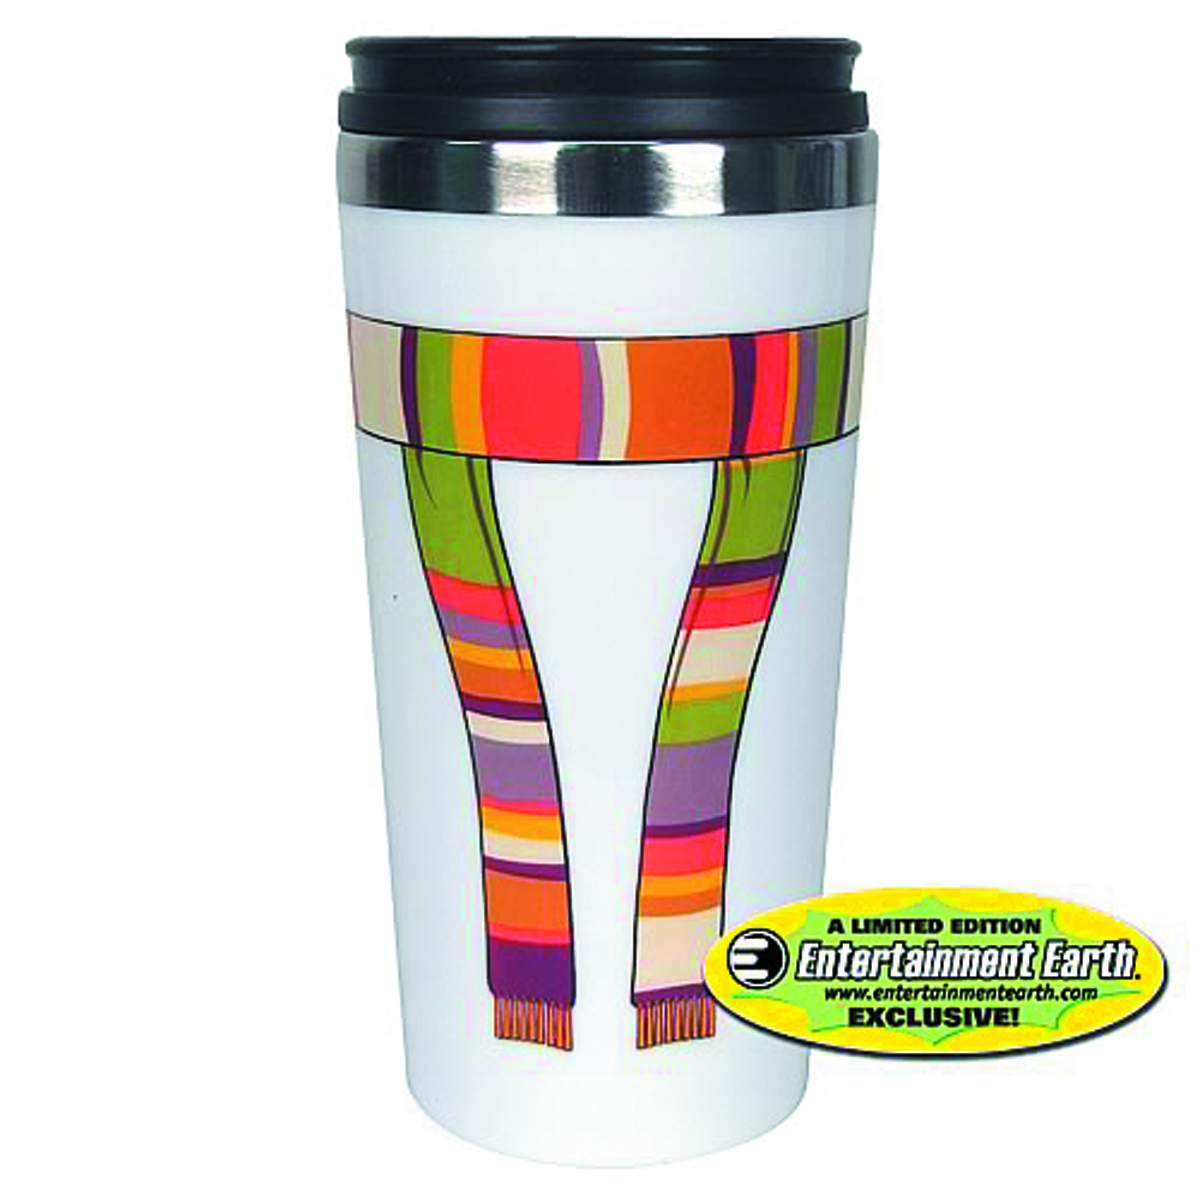 DOCTOR WHO 4TH DOCTOR SCARF TRAVEL MUG